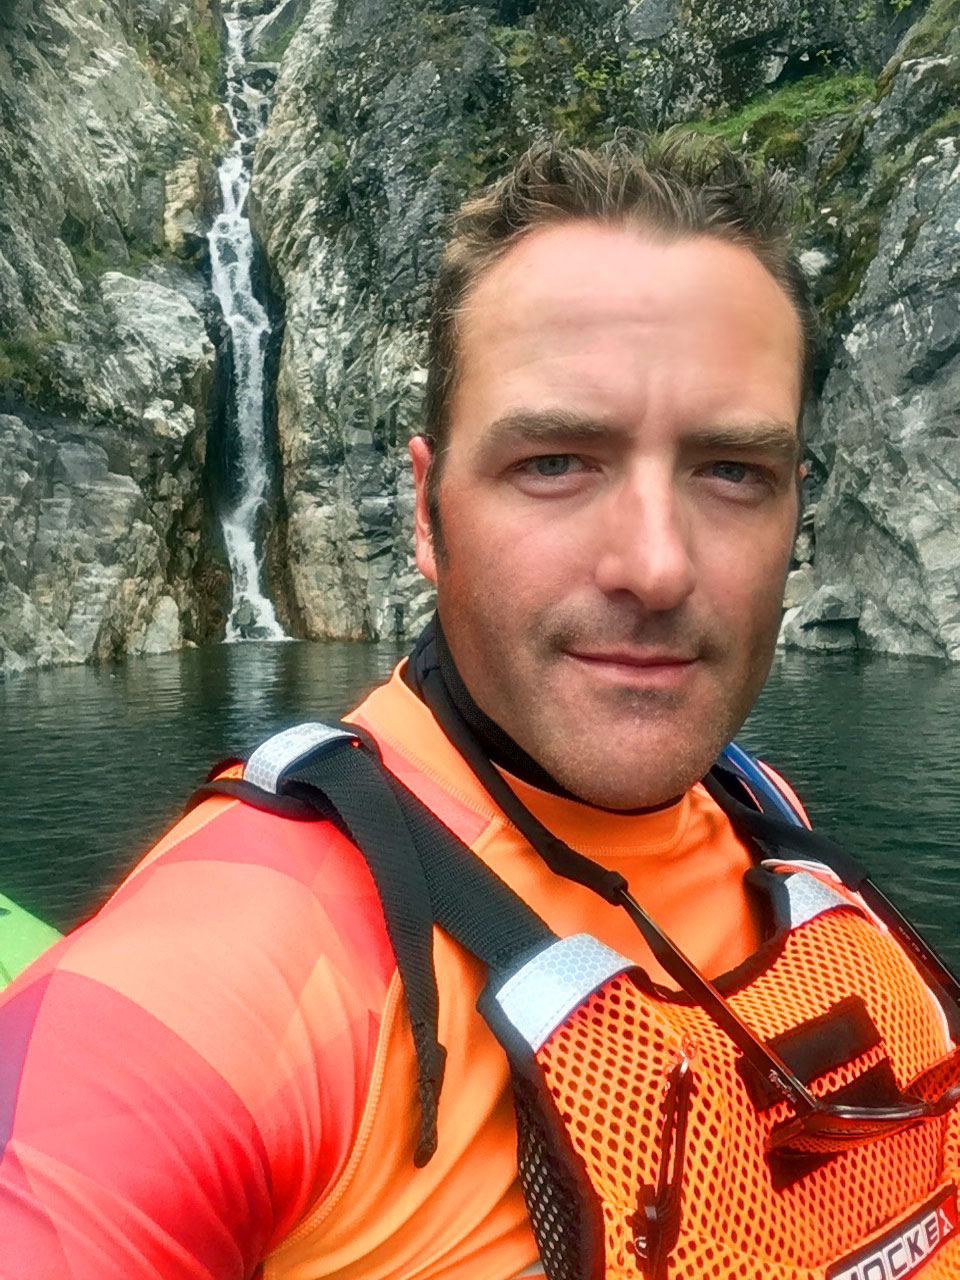 I don't often take selfies, but when I do they involve surfskis, waterfalls, and giant cliffs. The world needs more of the latter if not the former.